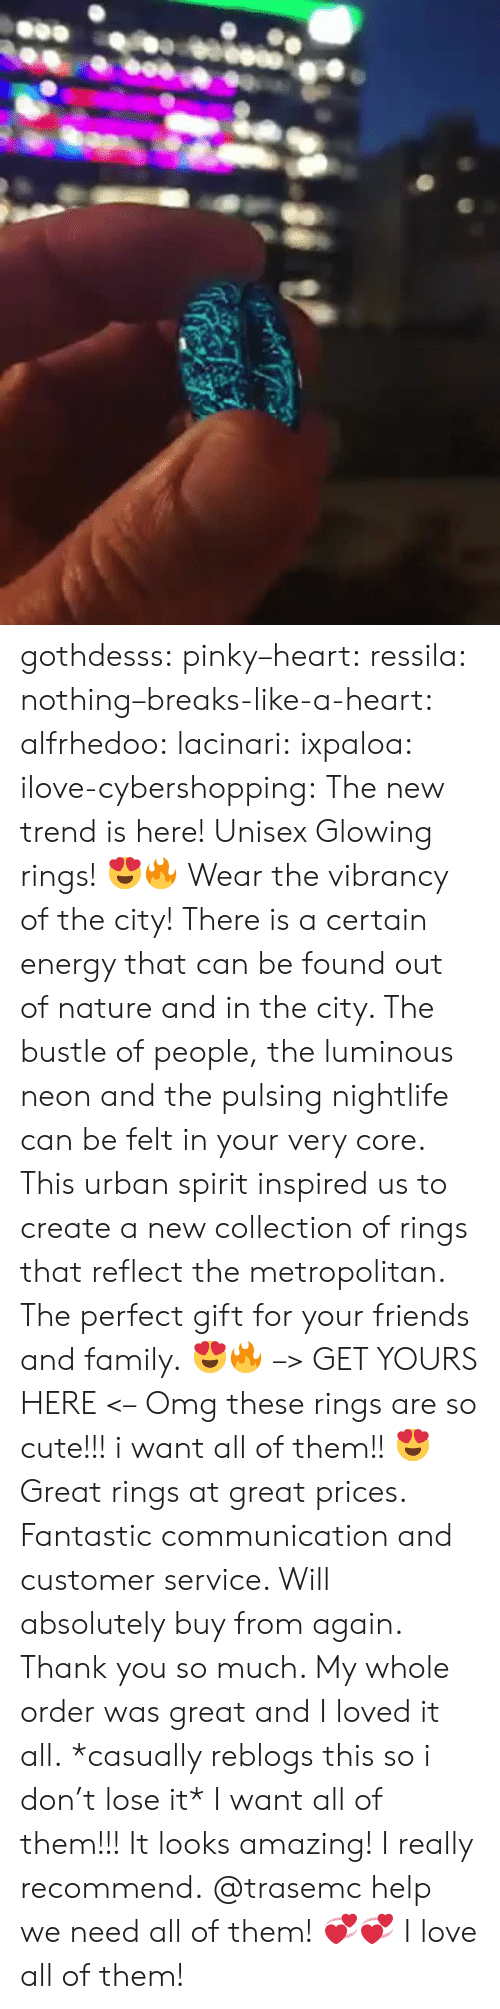 lose it: gothdesss:  pinky–heart: ressila:  nothing–breaks-like-a-heart:  alfrhedoo:  lacinari:  ixpaloa:  ilove-cybershopping:  The new trend is here! Unisex Glowing rings! 😍🔥 Wear the vibrancy of the city! There is a certain energy that can be found out of nature and in the city. The bustle of people, the luminous neon and the pulsing nightlife can be felt in your very core. This urban spirit inspired us to create a new collection of rings that reflect the metropolitan. The perfect gift for your friends and family. 😍🔥 –> GET YOURS HERE <–  Omg these rings are so cute!!! i want all of them!! 😍  Great rings at great prices. Fantastic communication and customer service. Will absolutely buy from again. Thank you so much. My whole order was great and I loved it all.  *casually reblogs this so i don't lose it*  I want all of them!!!  It looks amazing! I really recommend.  @trasemc help we need all of them! 💞💞  I love all of them!